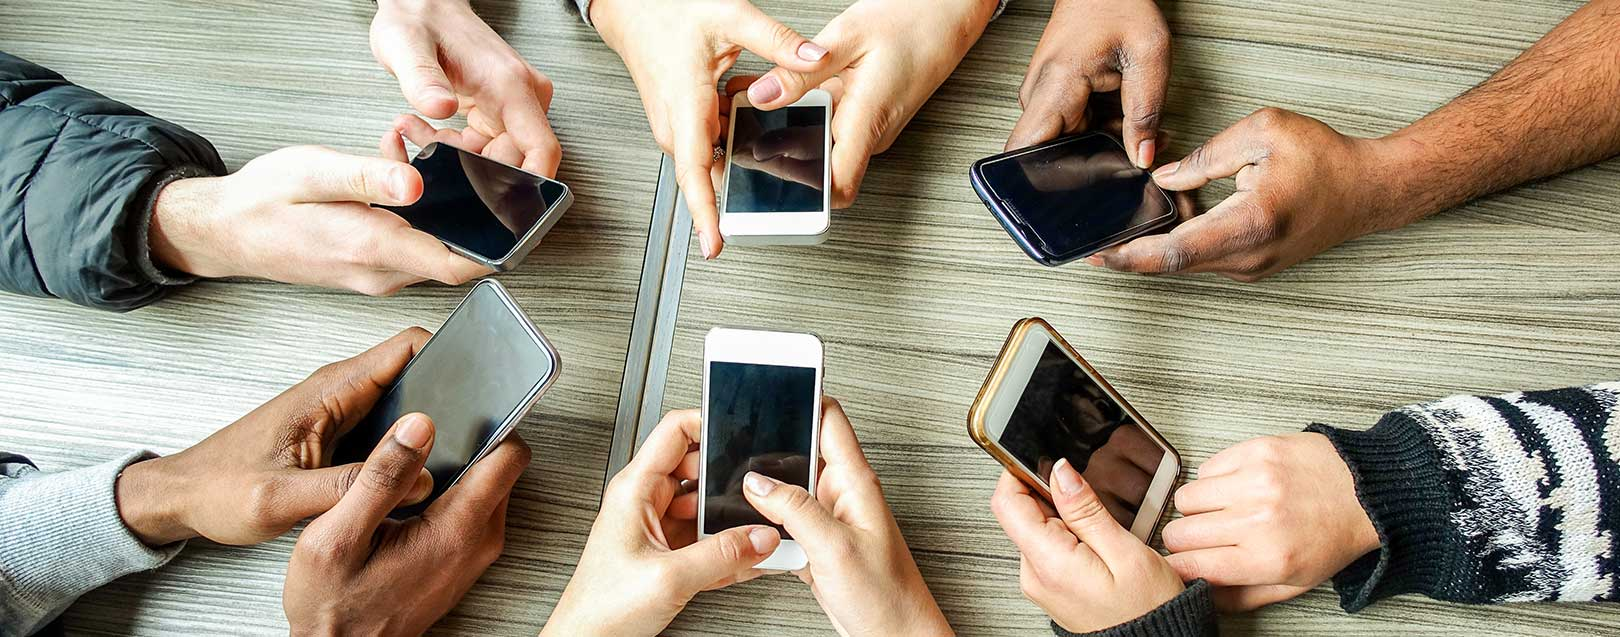 India to become 2nd largest 4G phone market after China next year